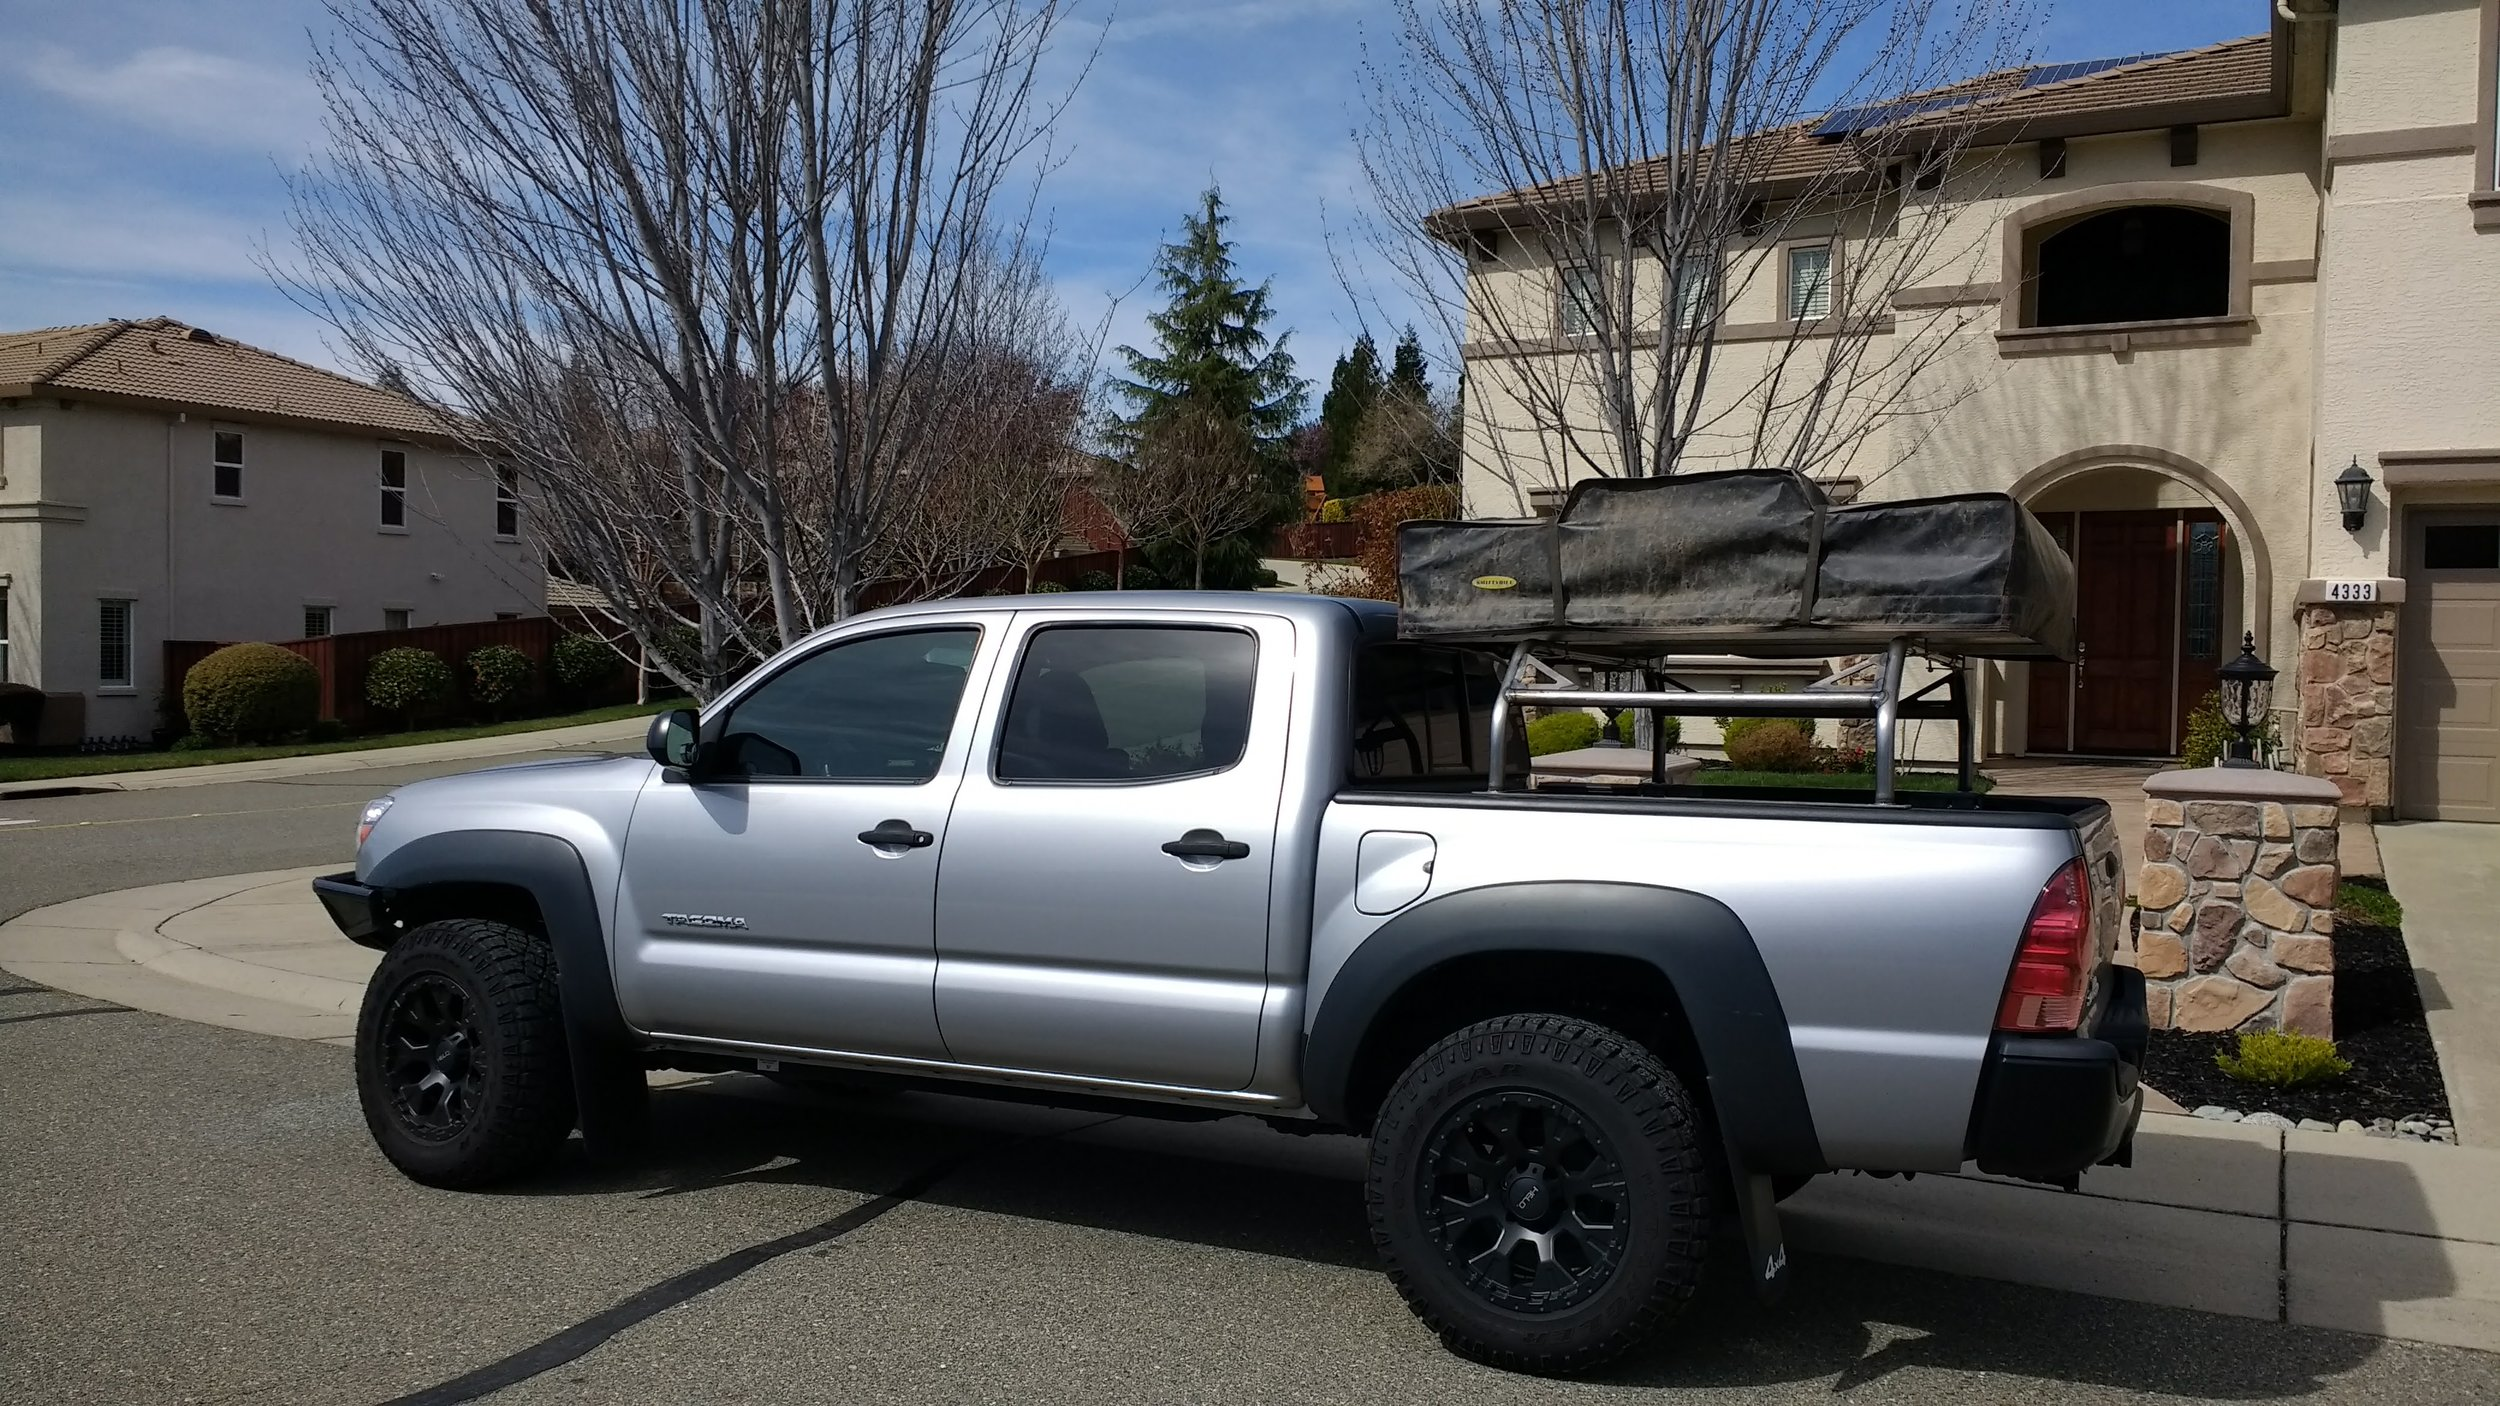 Hot Metal Fab Universal Over The Bed Rack Holds Any Rooftop Tent Fits Any Truck Hot Metal Fabrication